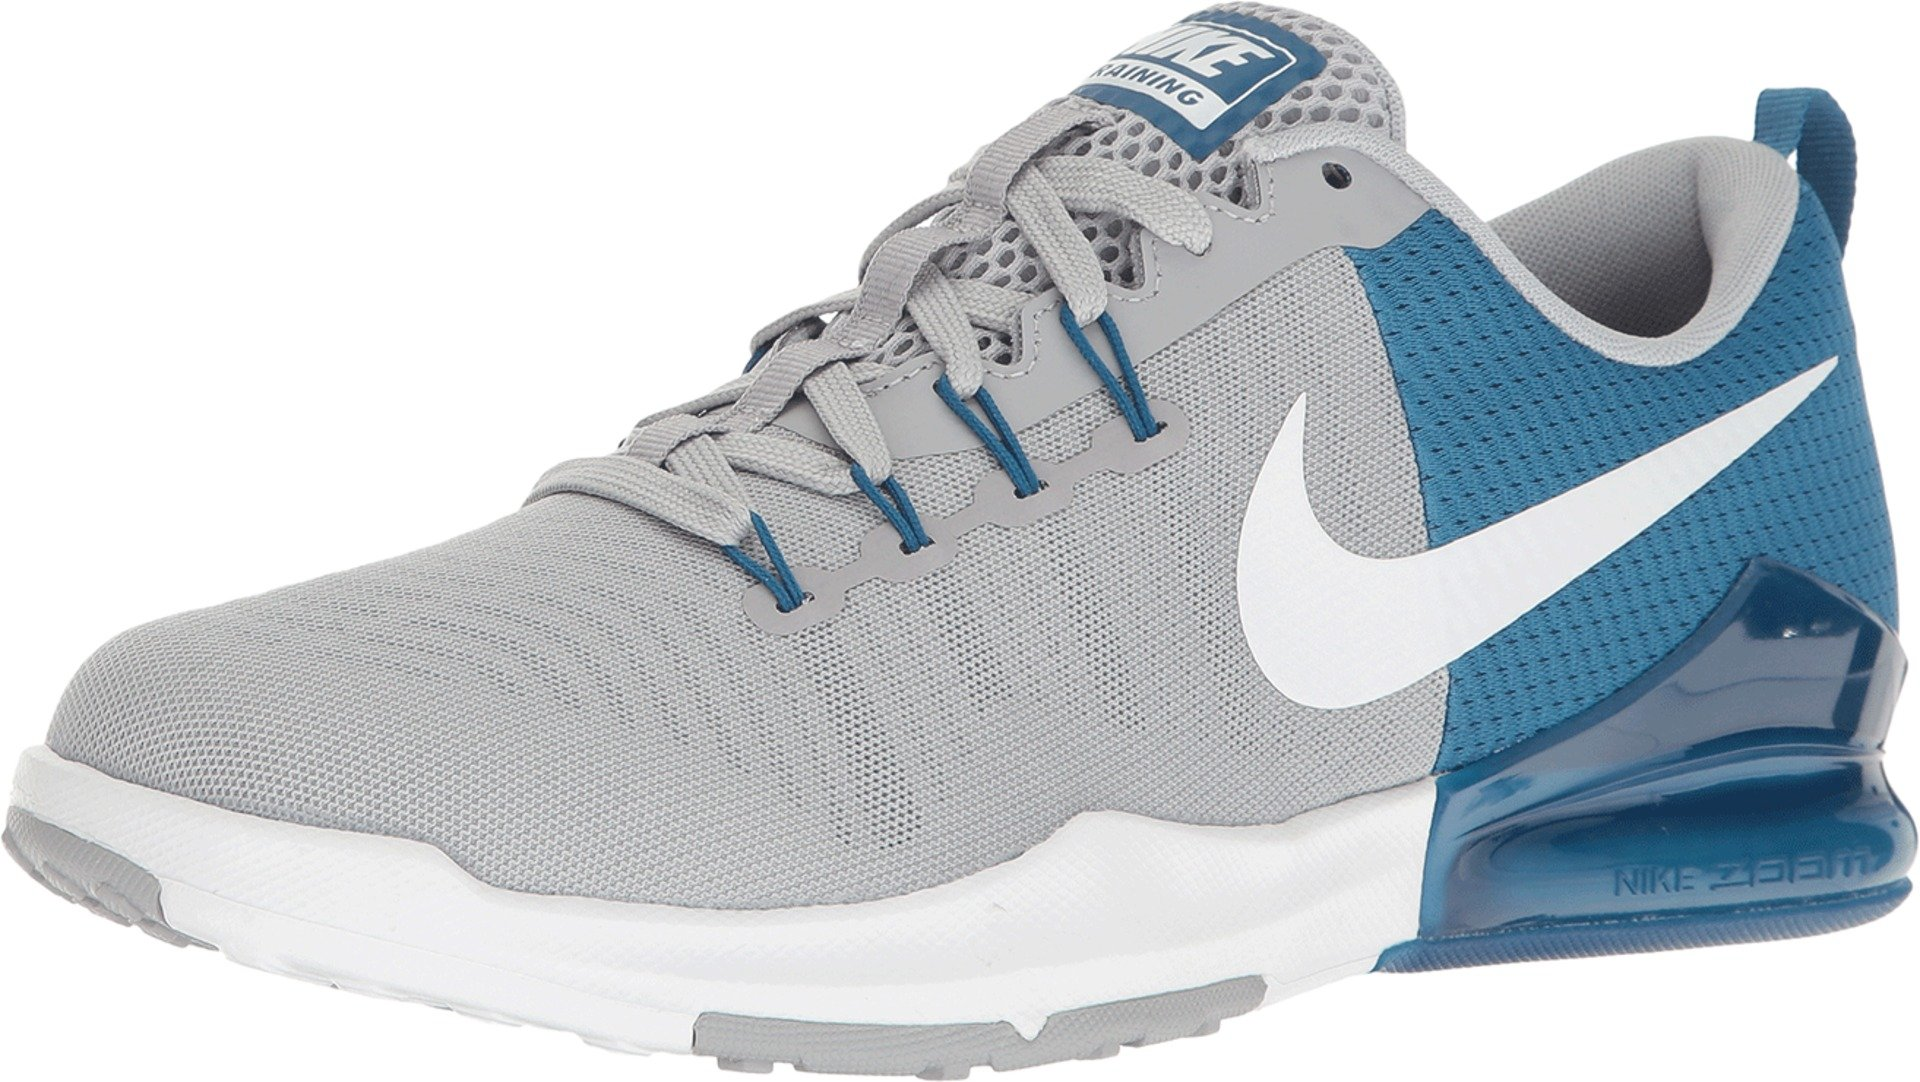 bcf35938a2bfb Galleon - NIKE Mens Zoom Train Action Mesh Running